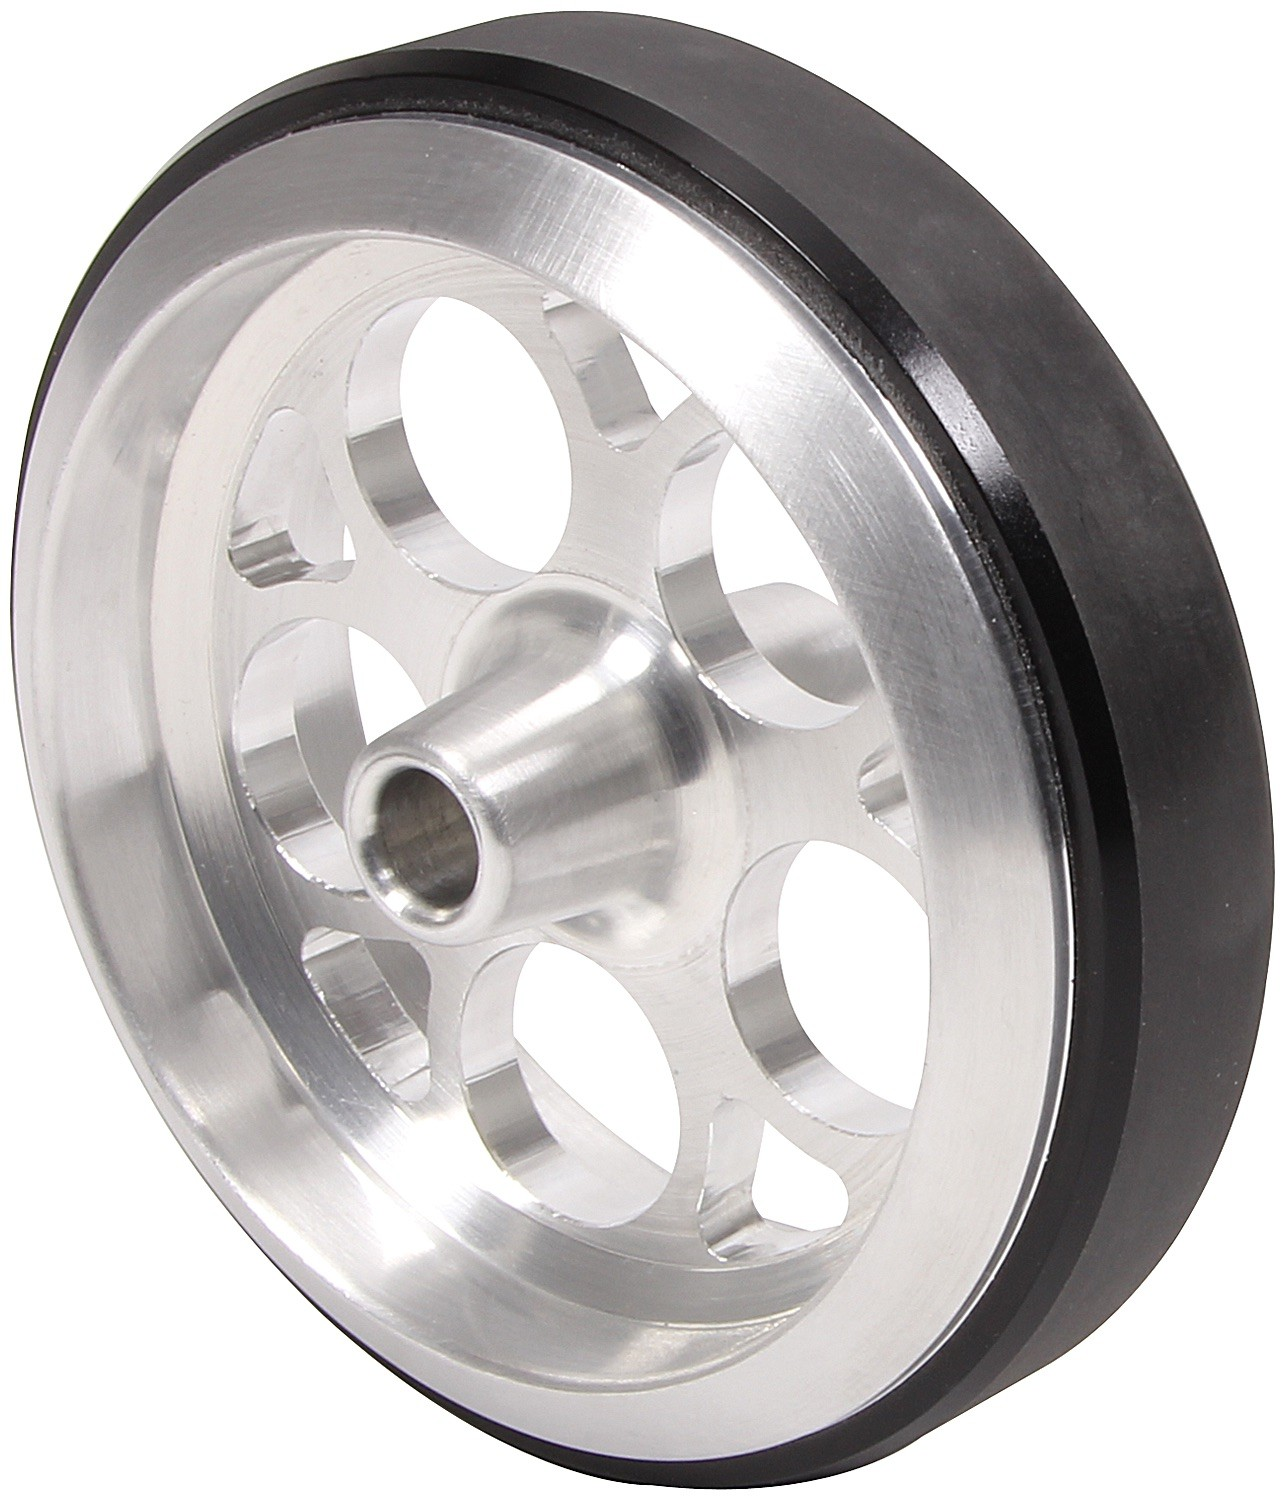 Big End Billet Wheelie Bar Wheels, Hole Style Wheels, each